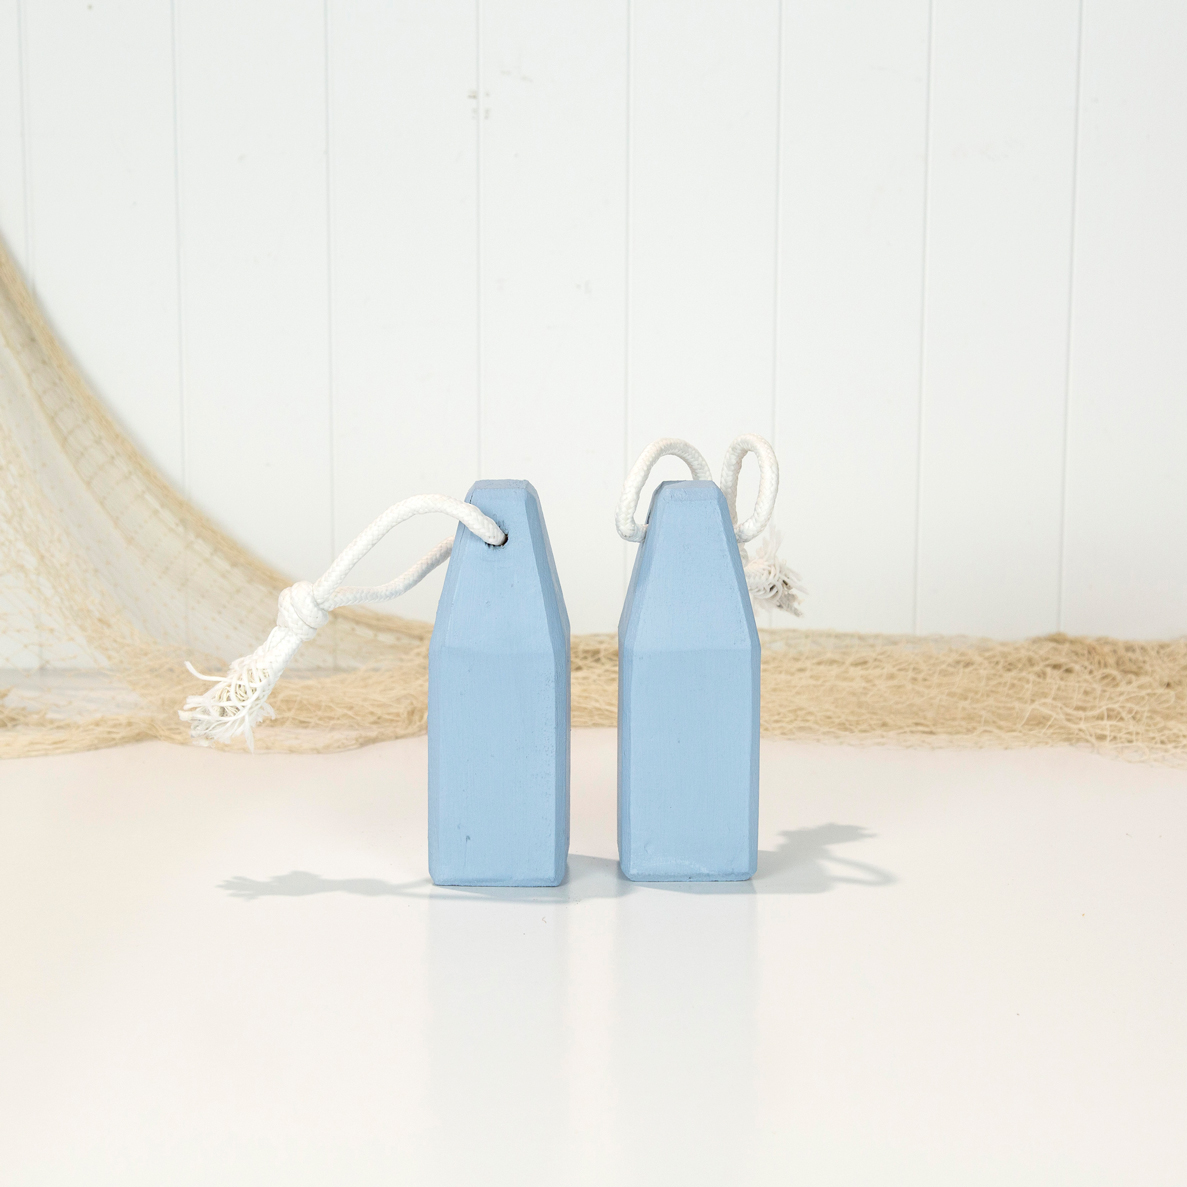 Painted Wooden Buoy - French Blue